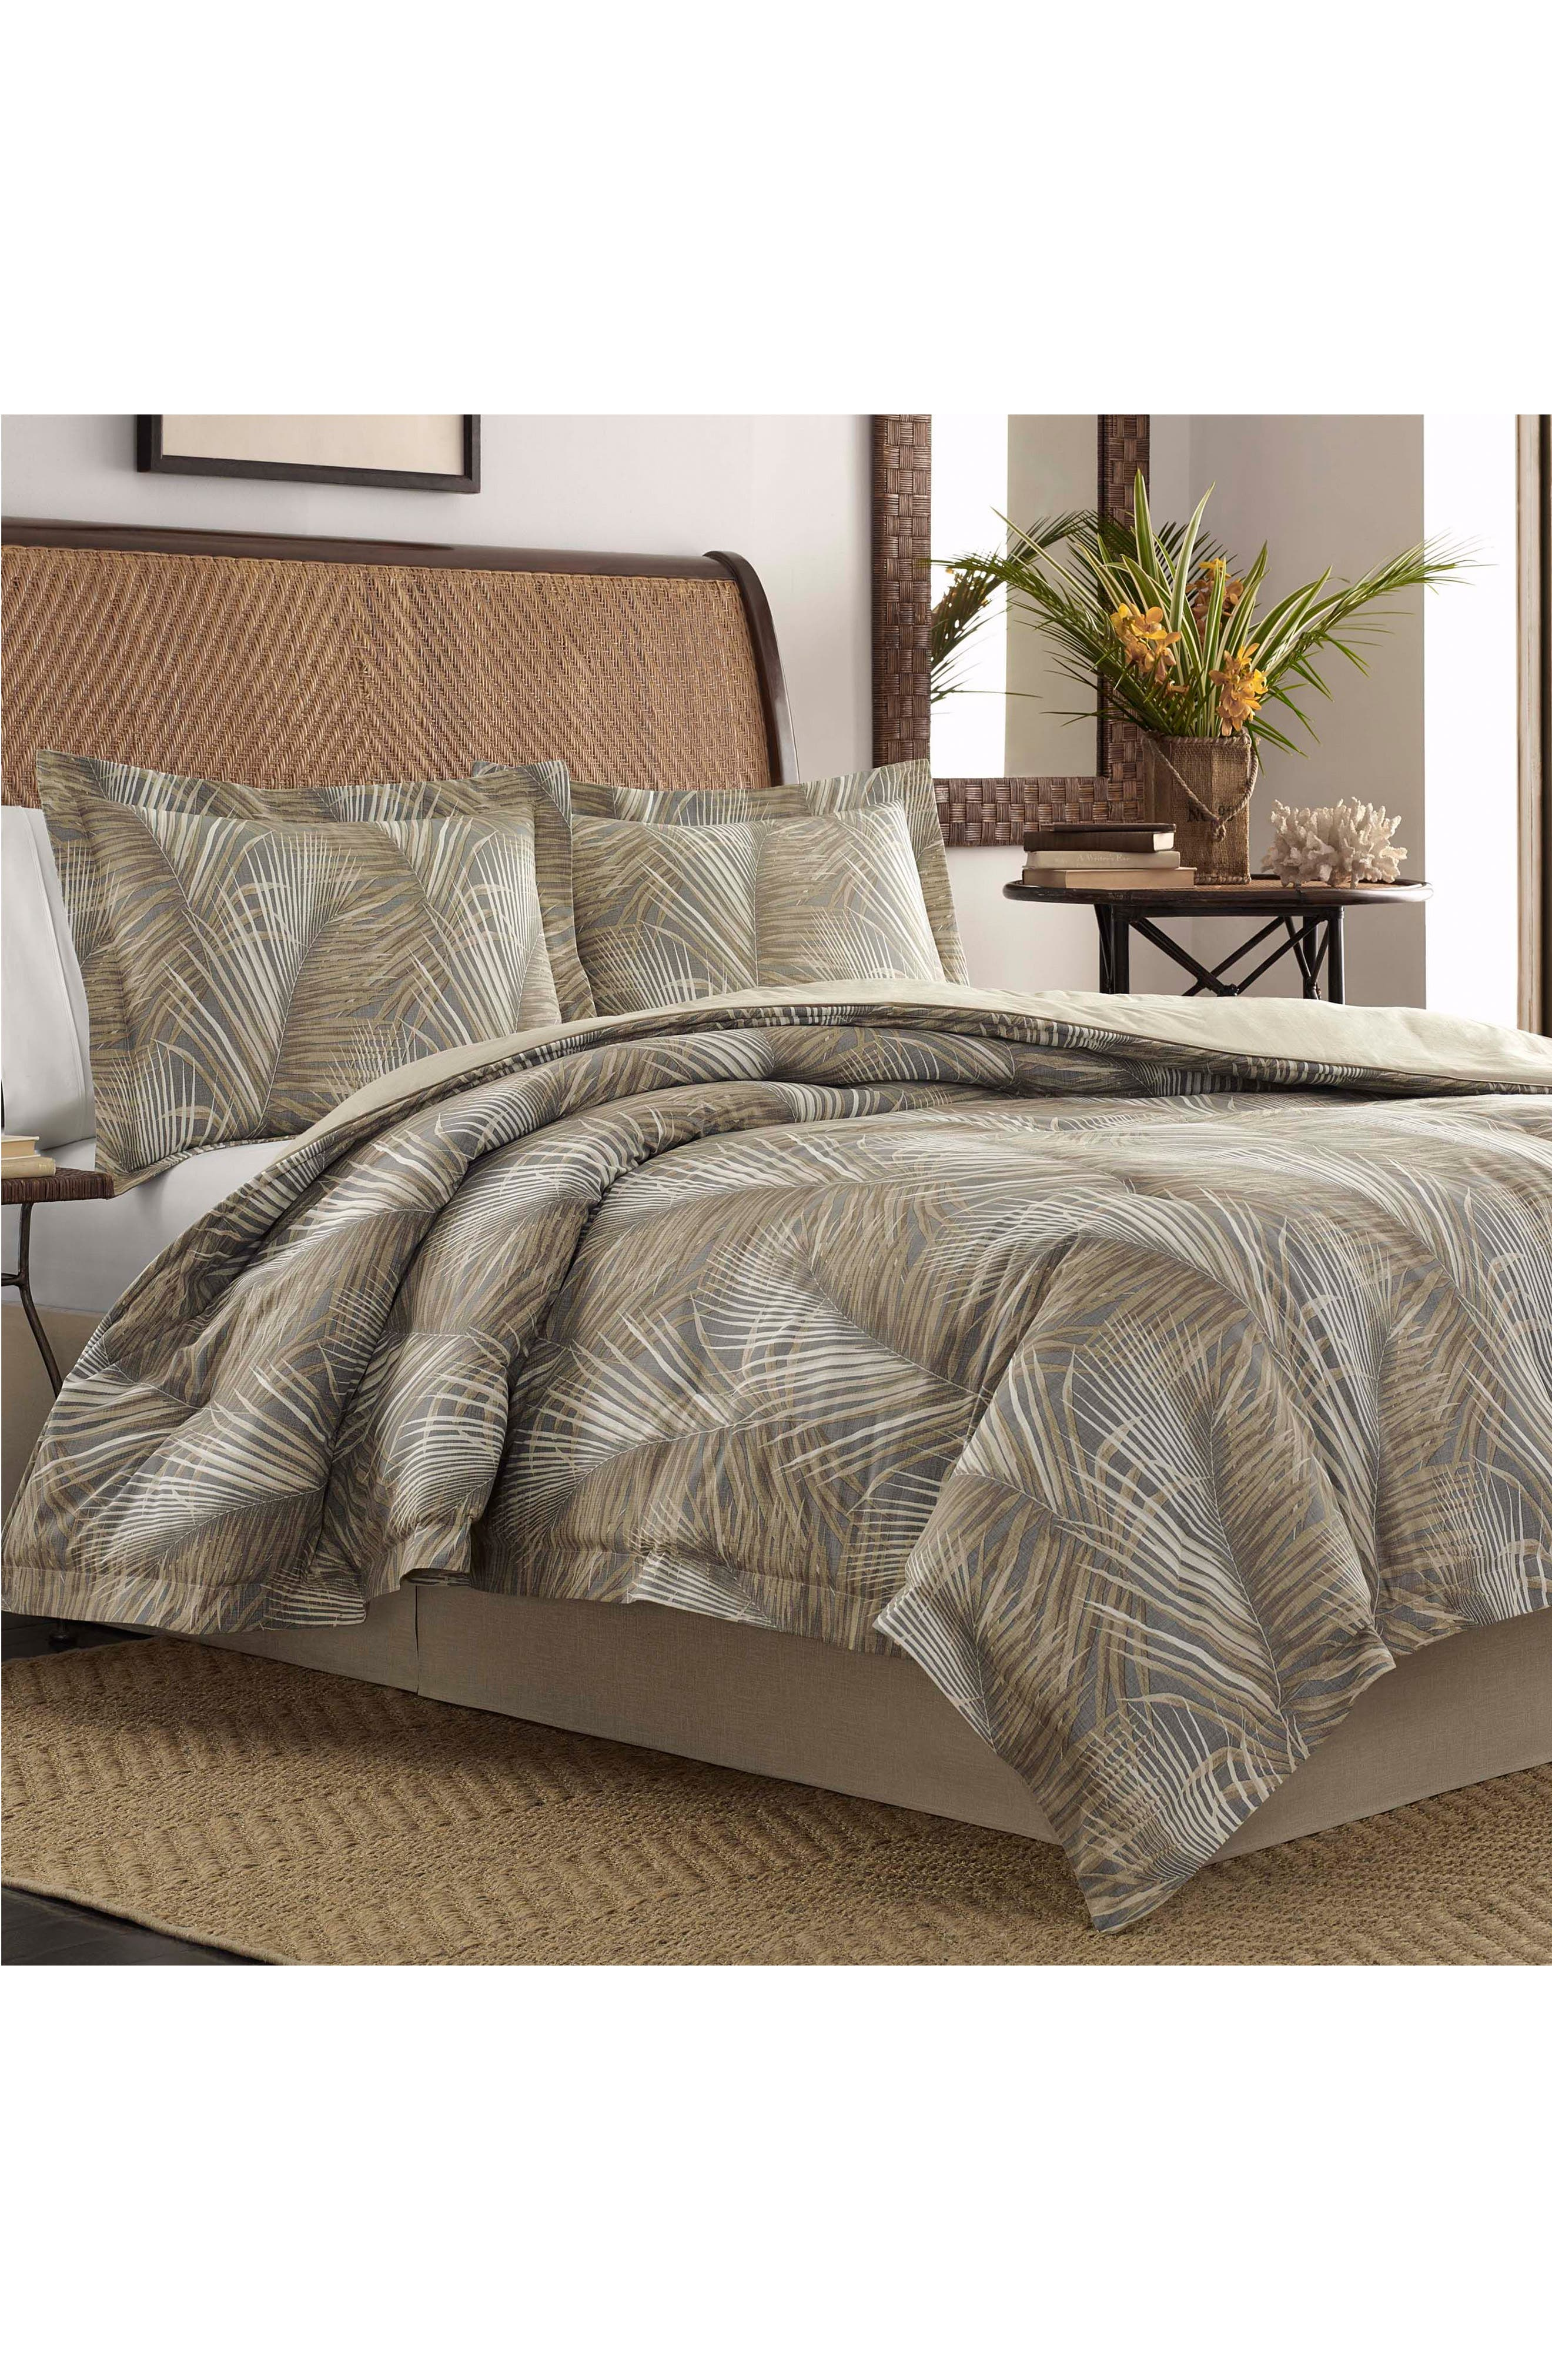 twin cal cover bedspread california king set awesome duvet size sheet sizes comforter measurements bedding